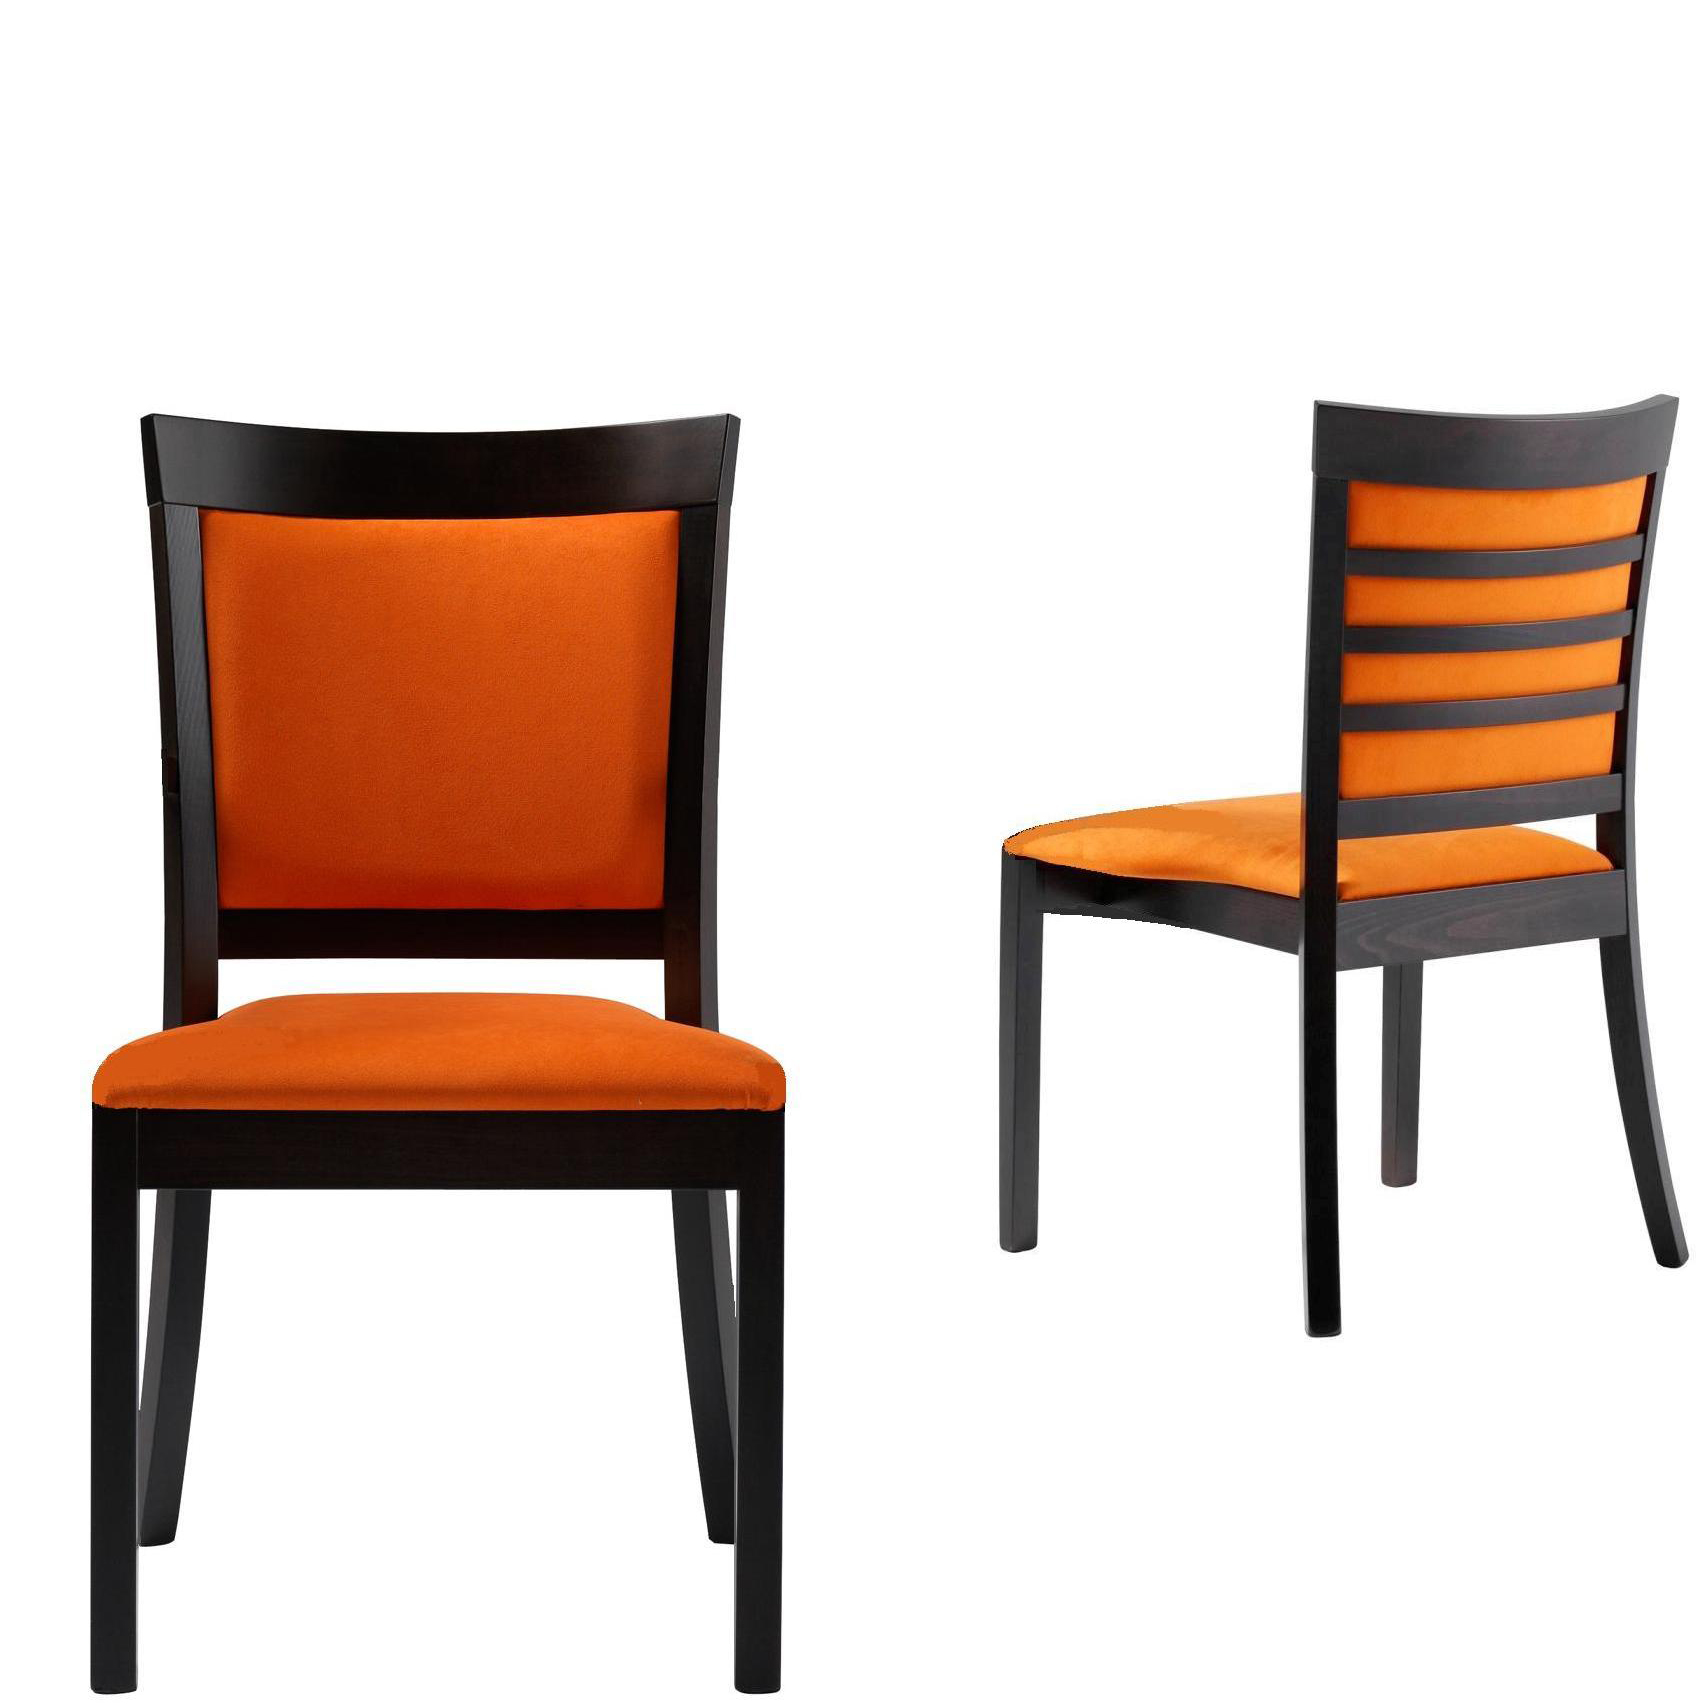 Two orange and black chairs